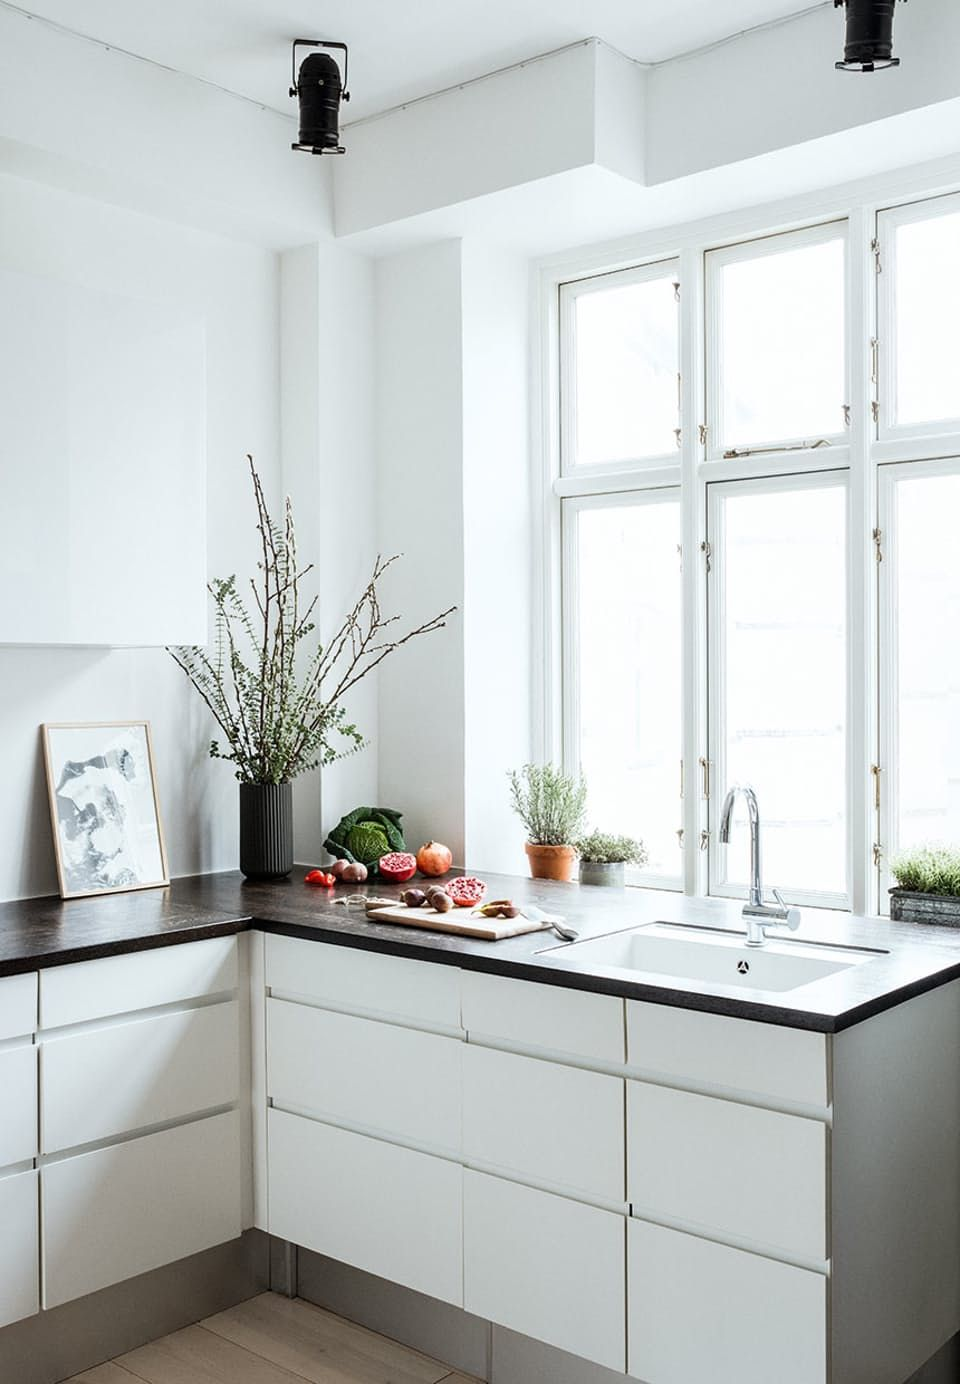 White kitchen with black stained tabletop - minimalistic with space to decorate as one like.